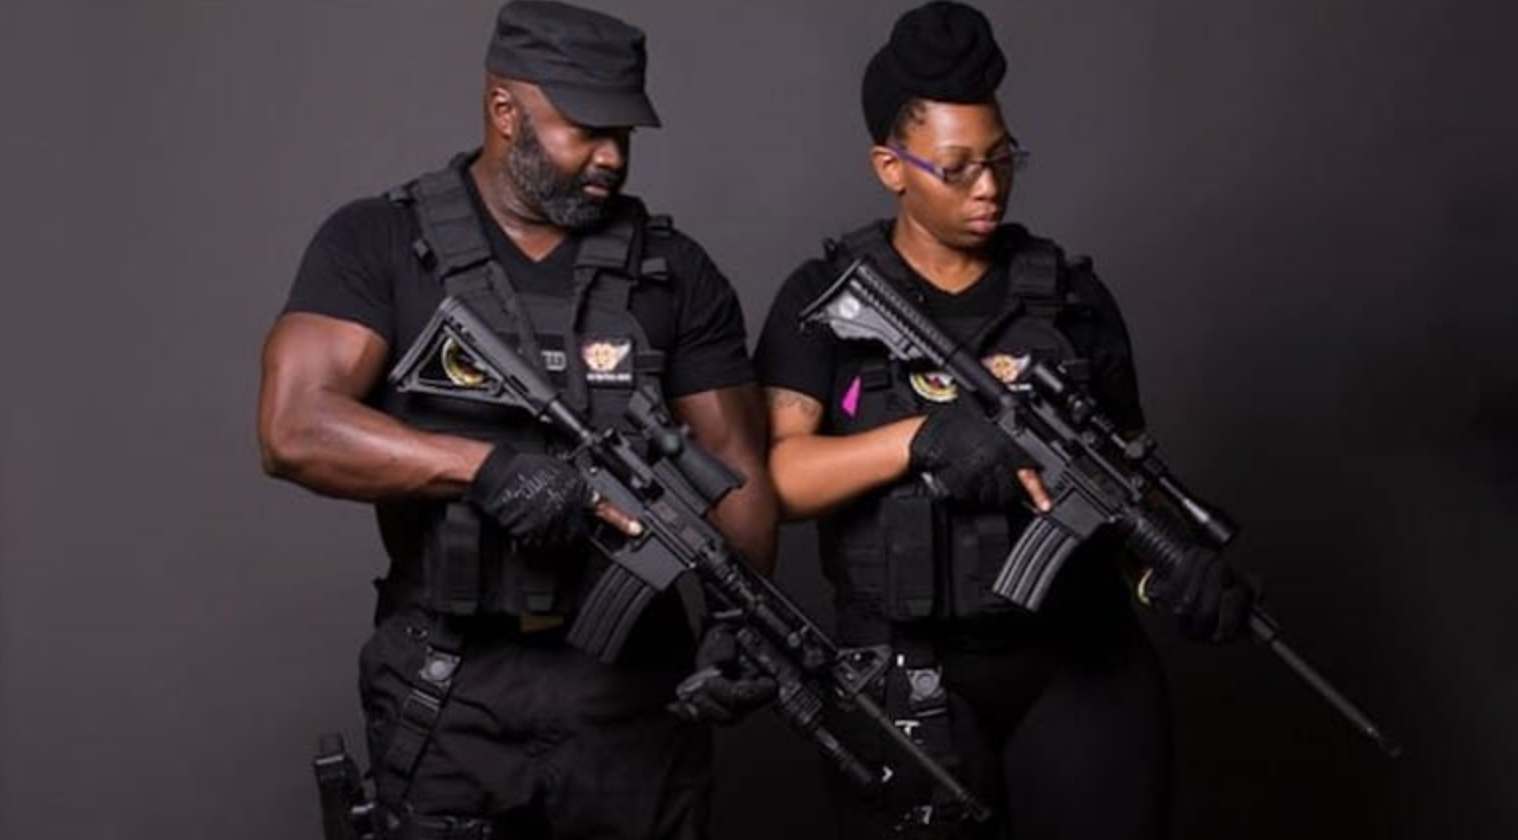 NAAGA Offers Black Gun Owners An NRA Alternative